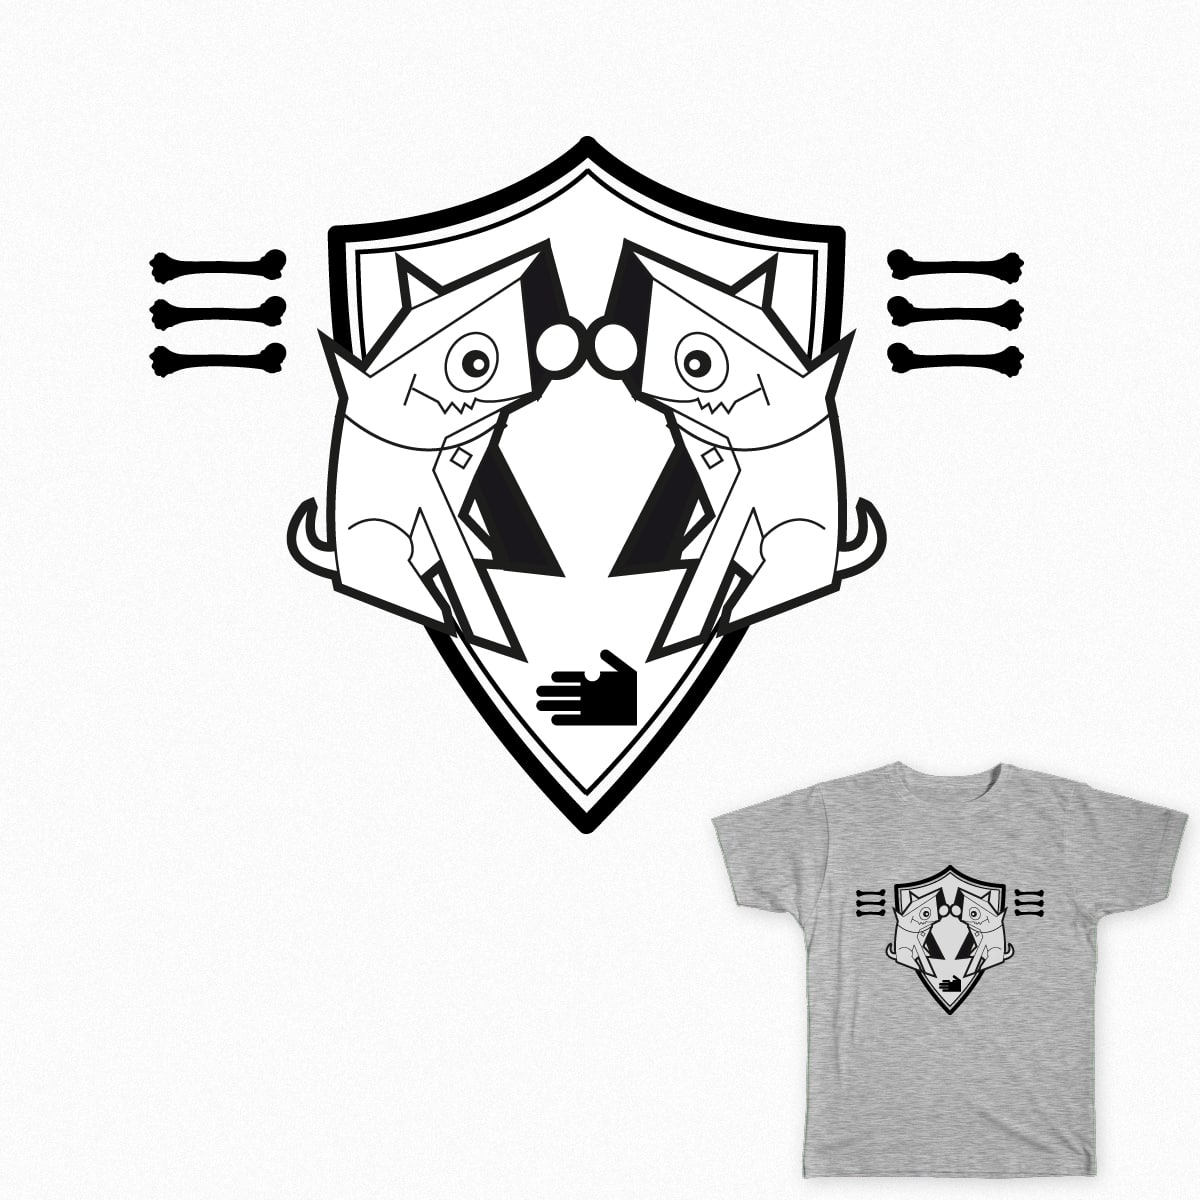 Dogs shield by newrobotz on Threadless